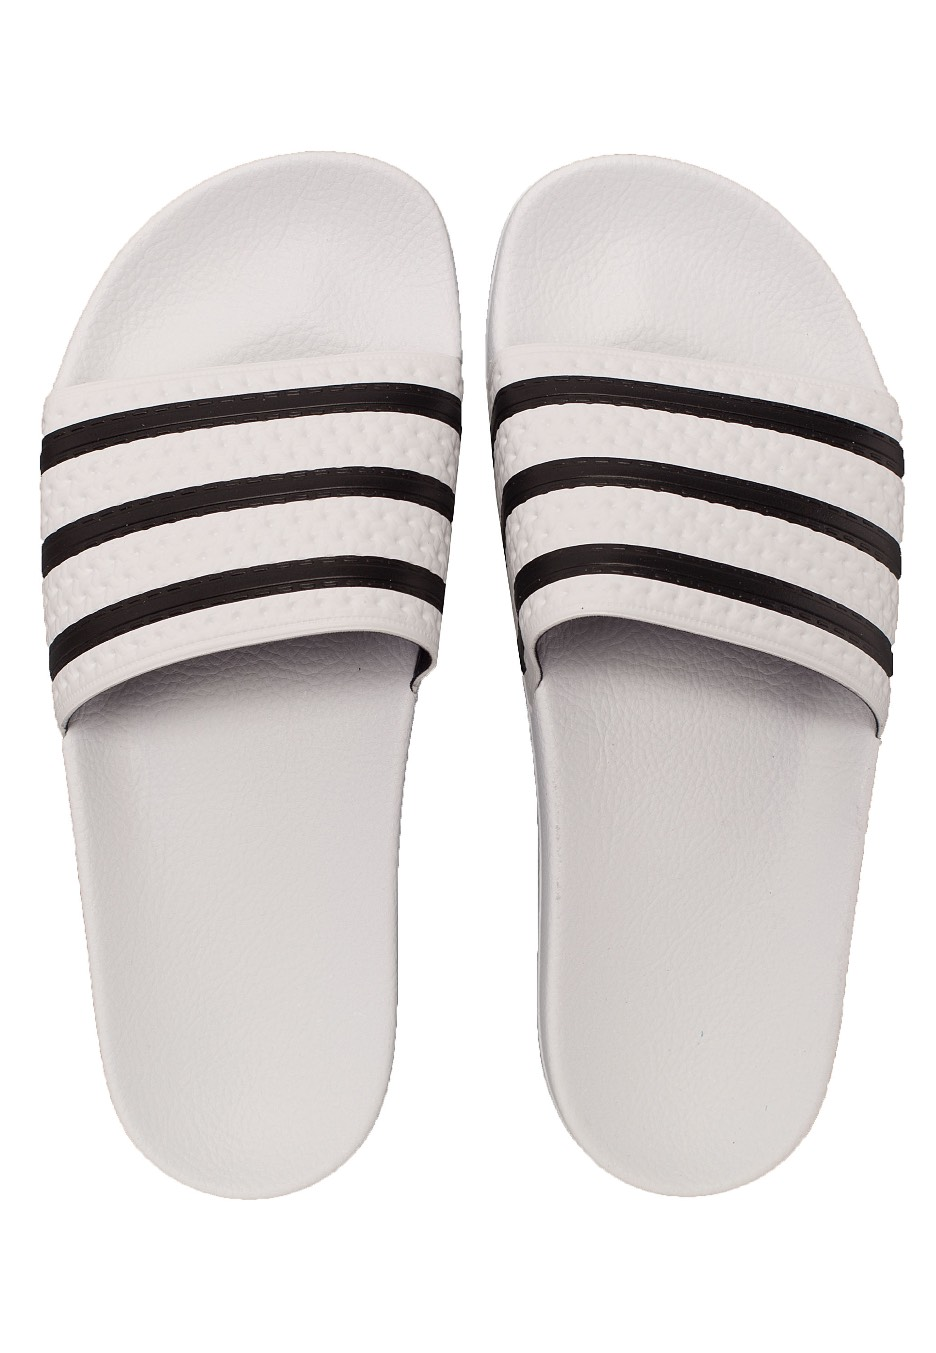 361426bff29 Adidas - Adilette White Core Black White - Sandals - Impericon.com UK